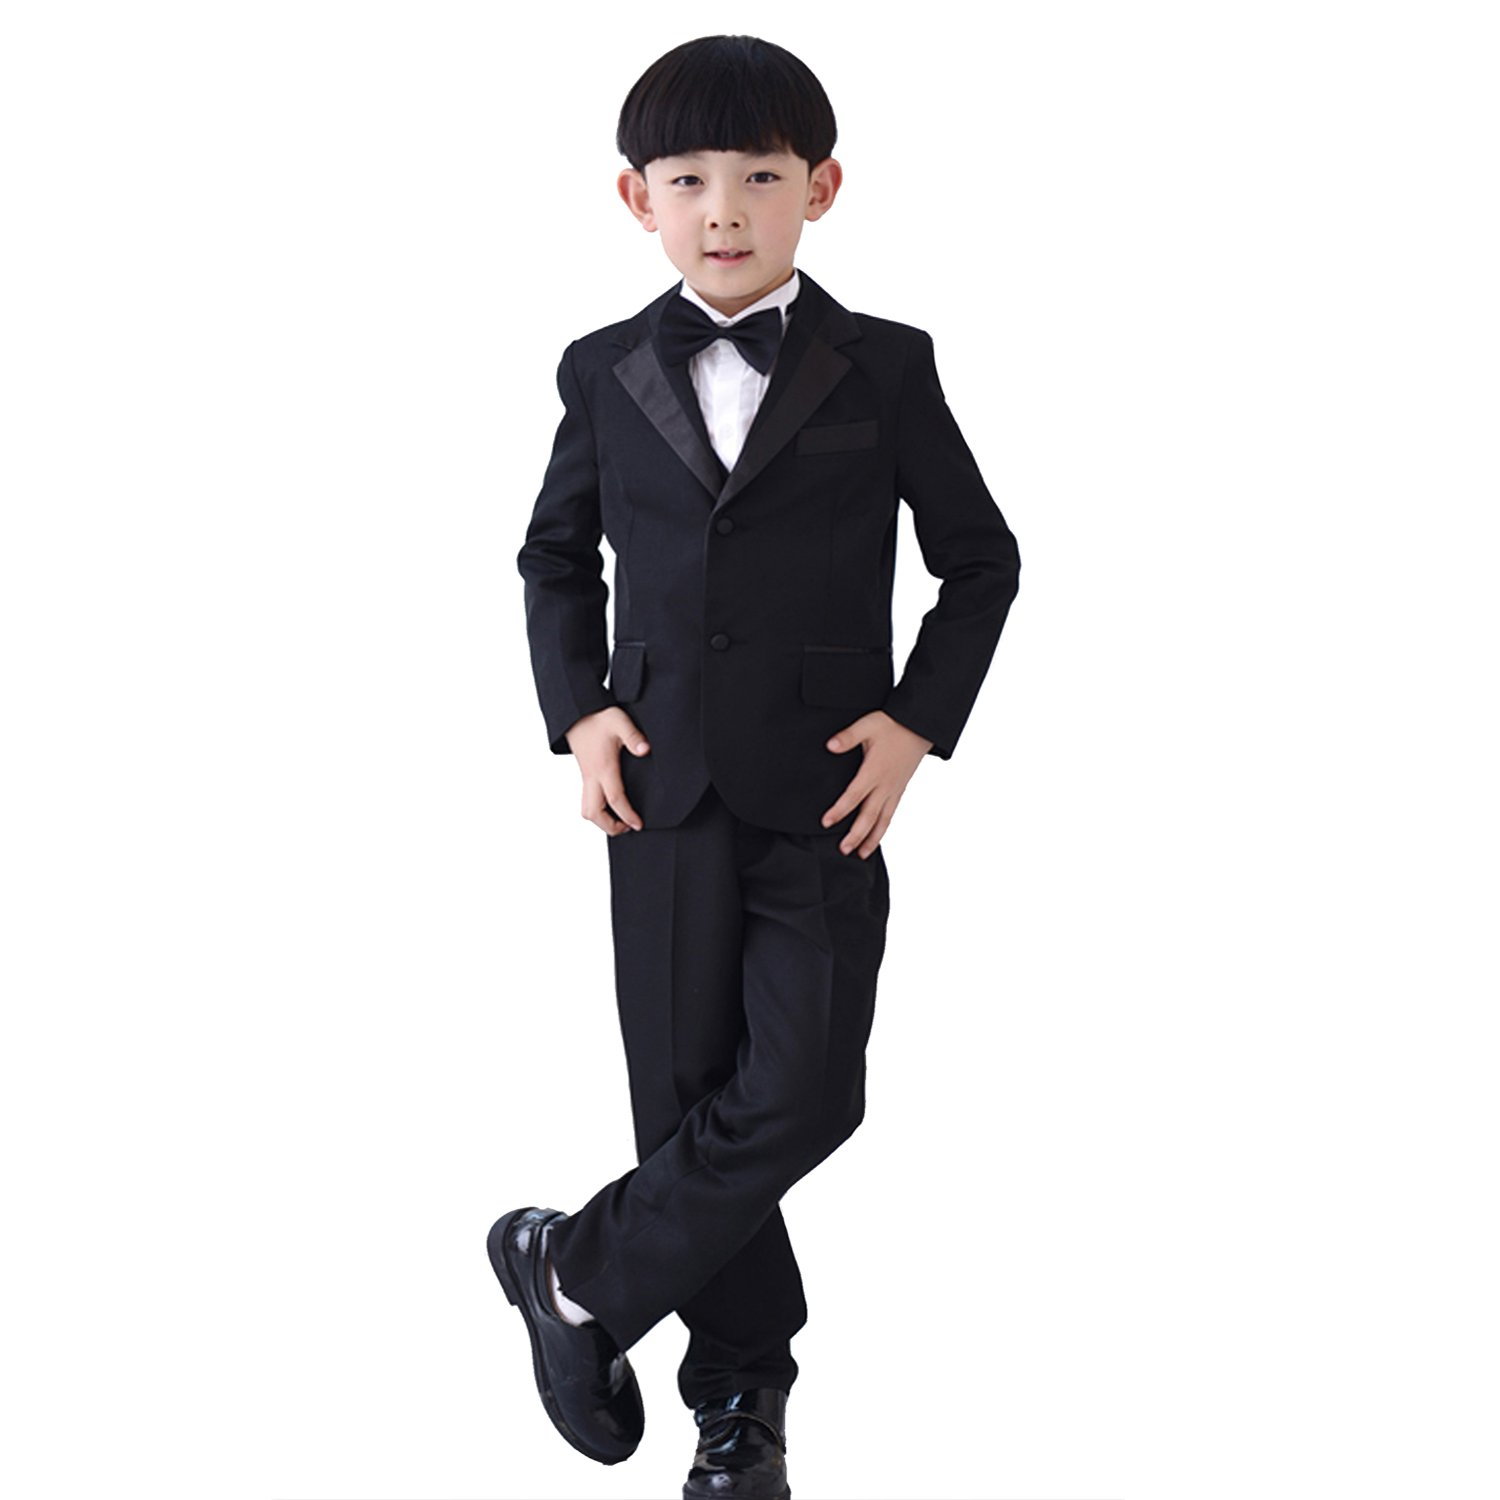 7 Pcs Boys Formal Blazer Children Tuxedo Ring Bearer Wedding Party Suit Black (4-5 Years)